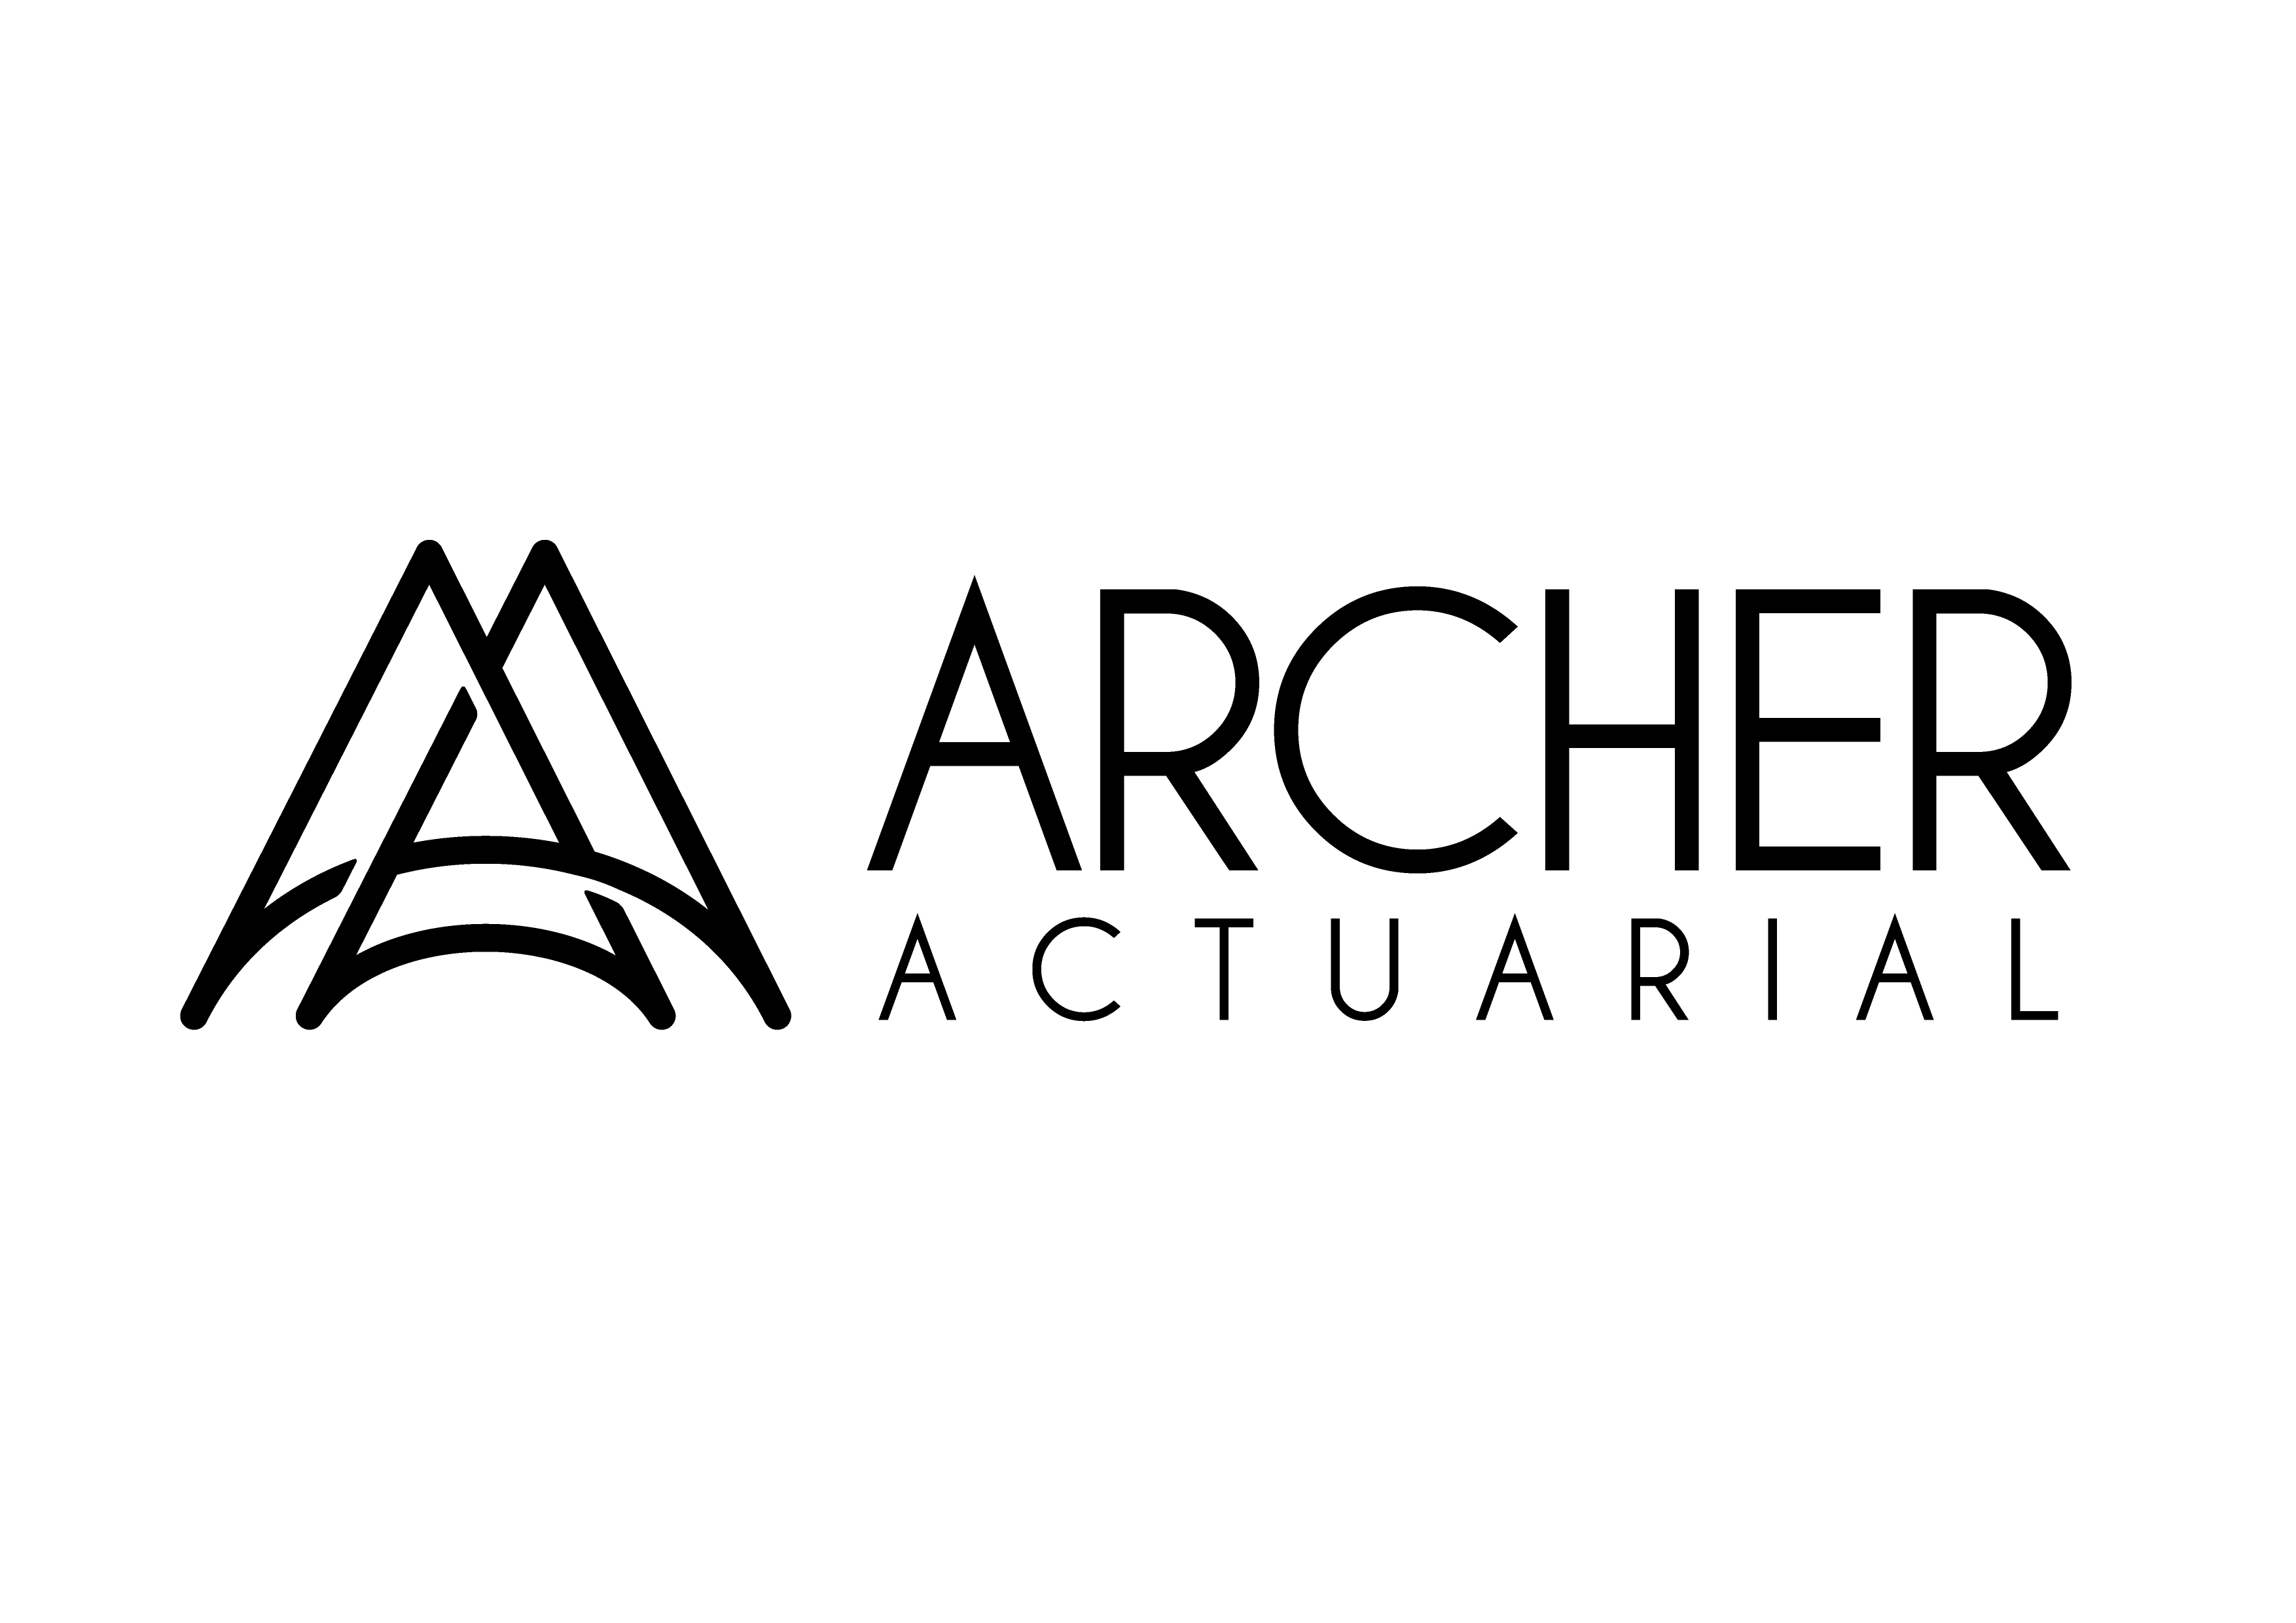 What do math and archery have in common? Help design a compelling logo for start-up